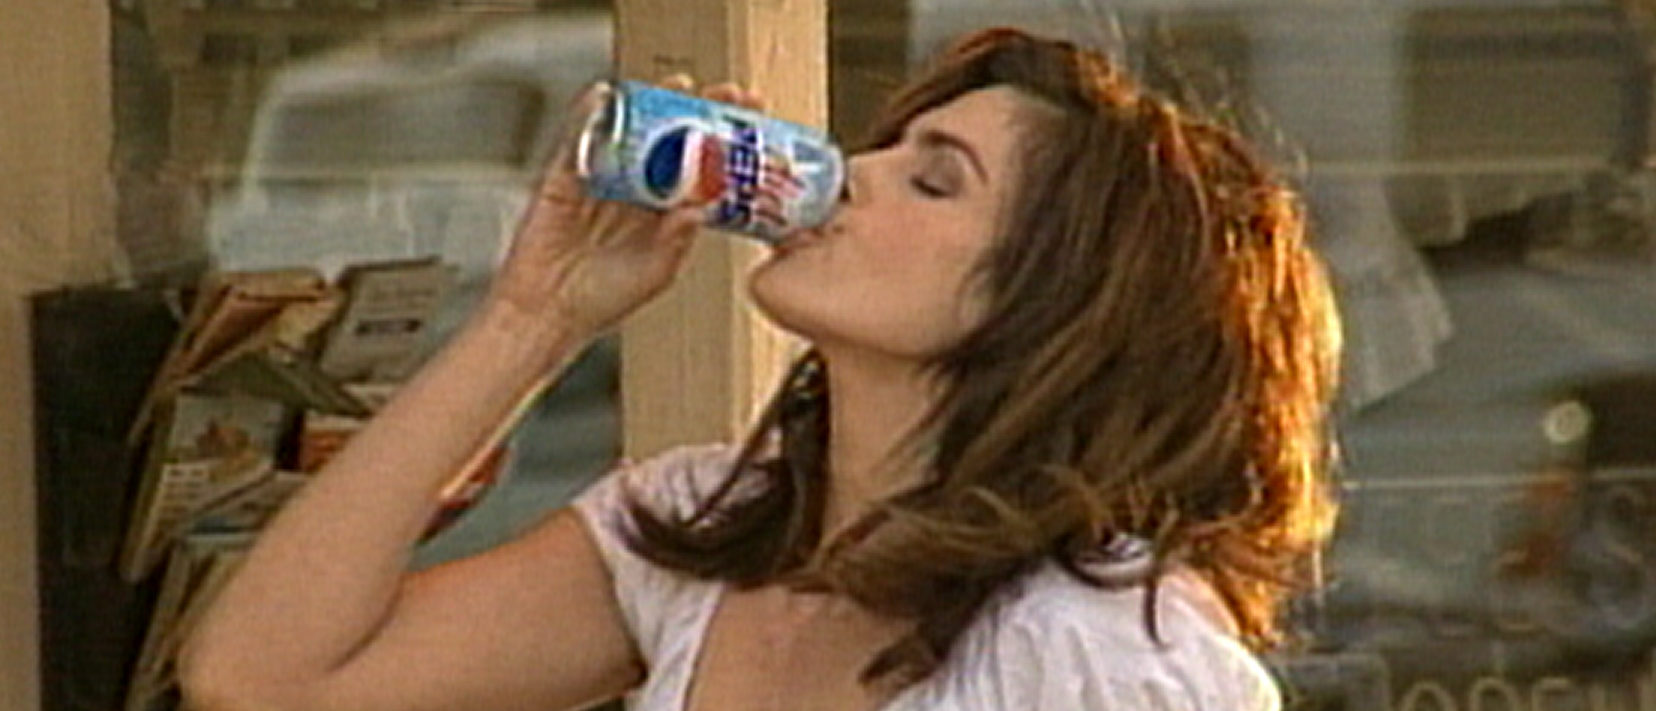 Cindy Crawford. (Photo Courtesy of Pepsi/ Getty Images)